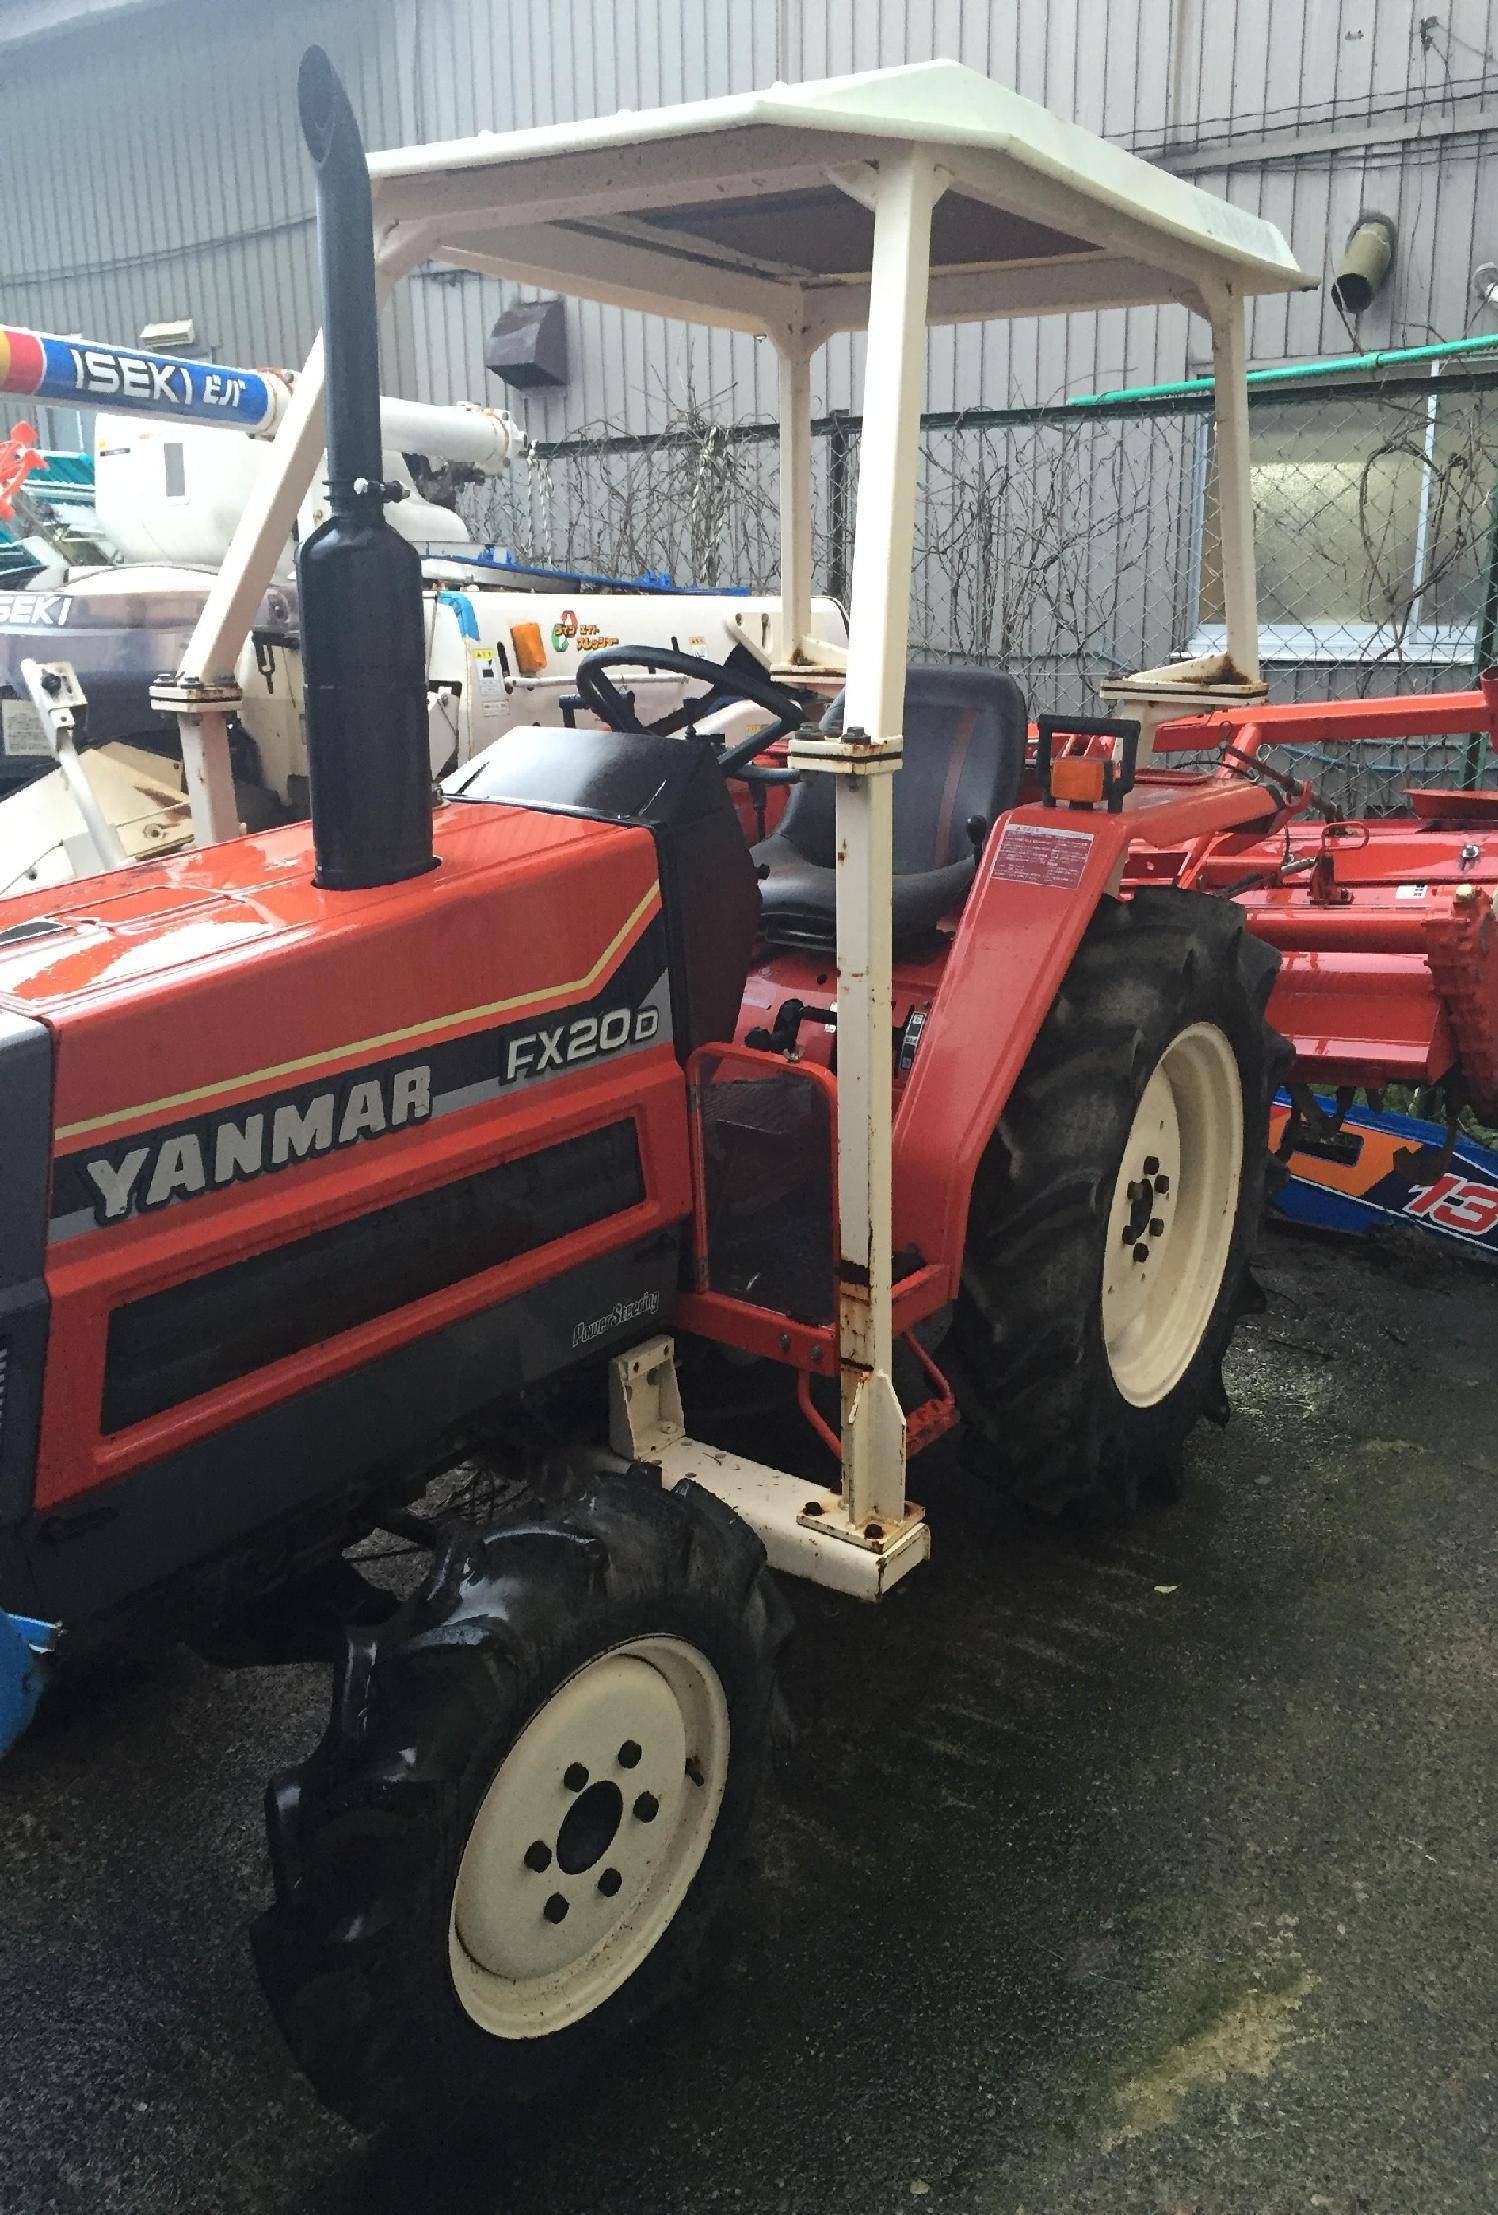 Used tractor Yanmar FX20D